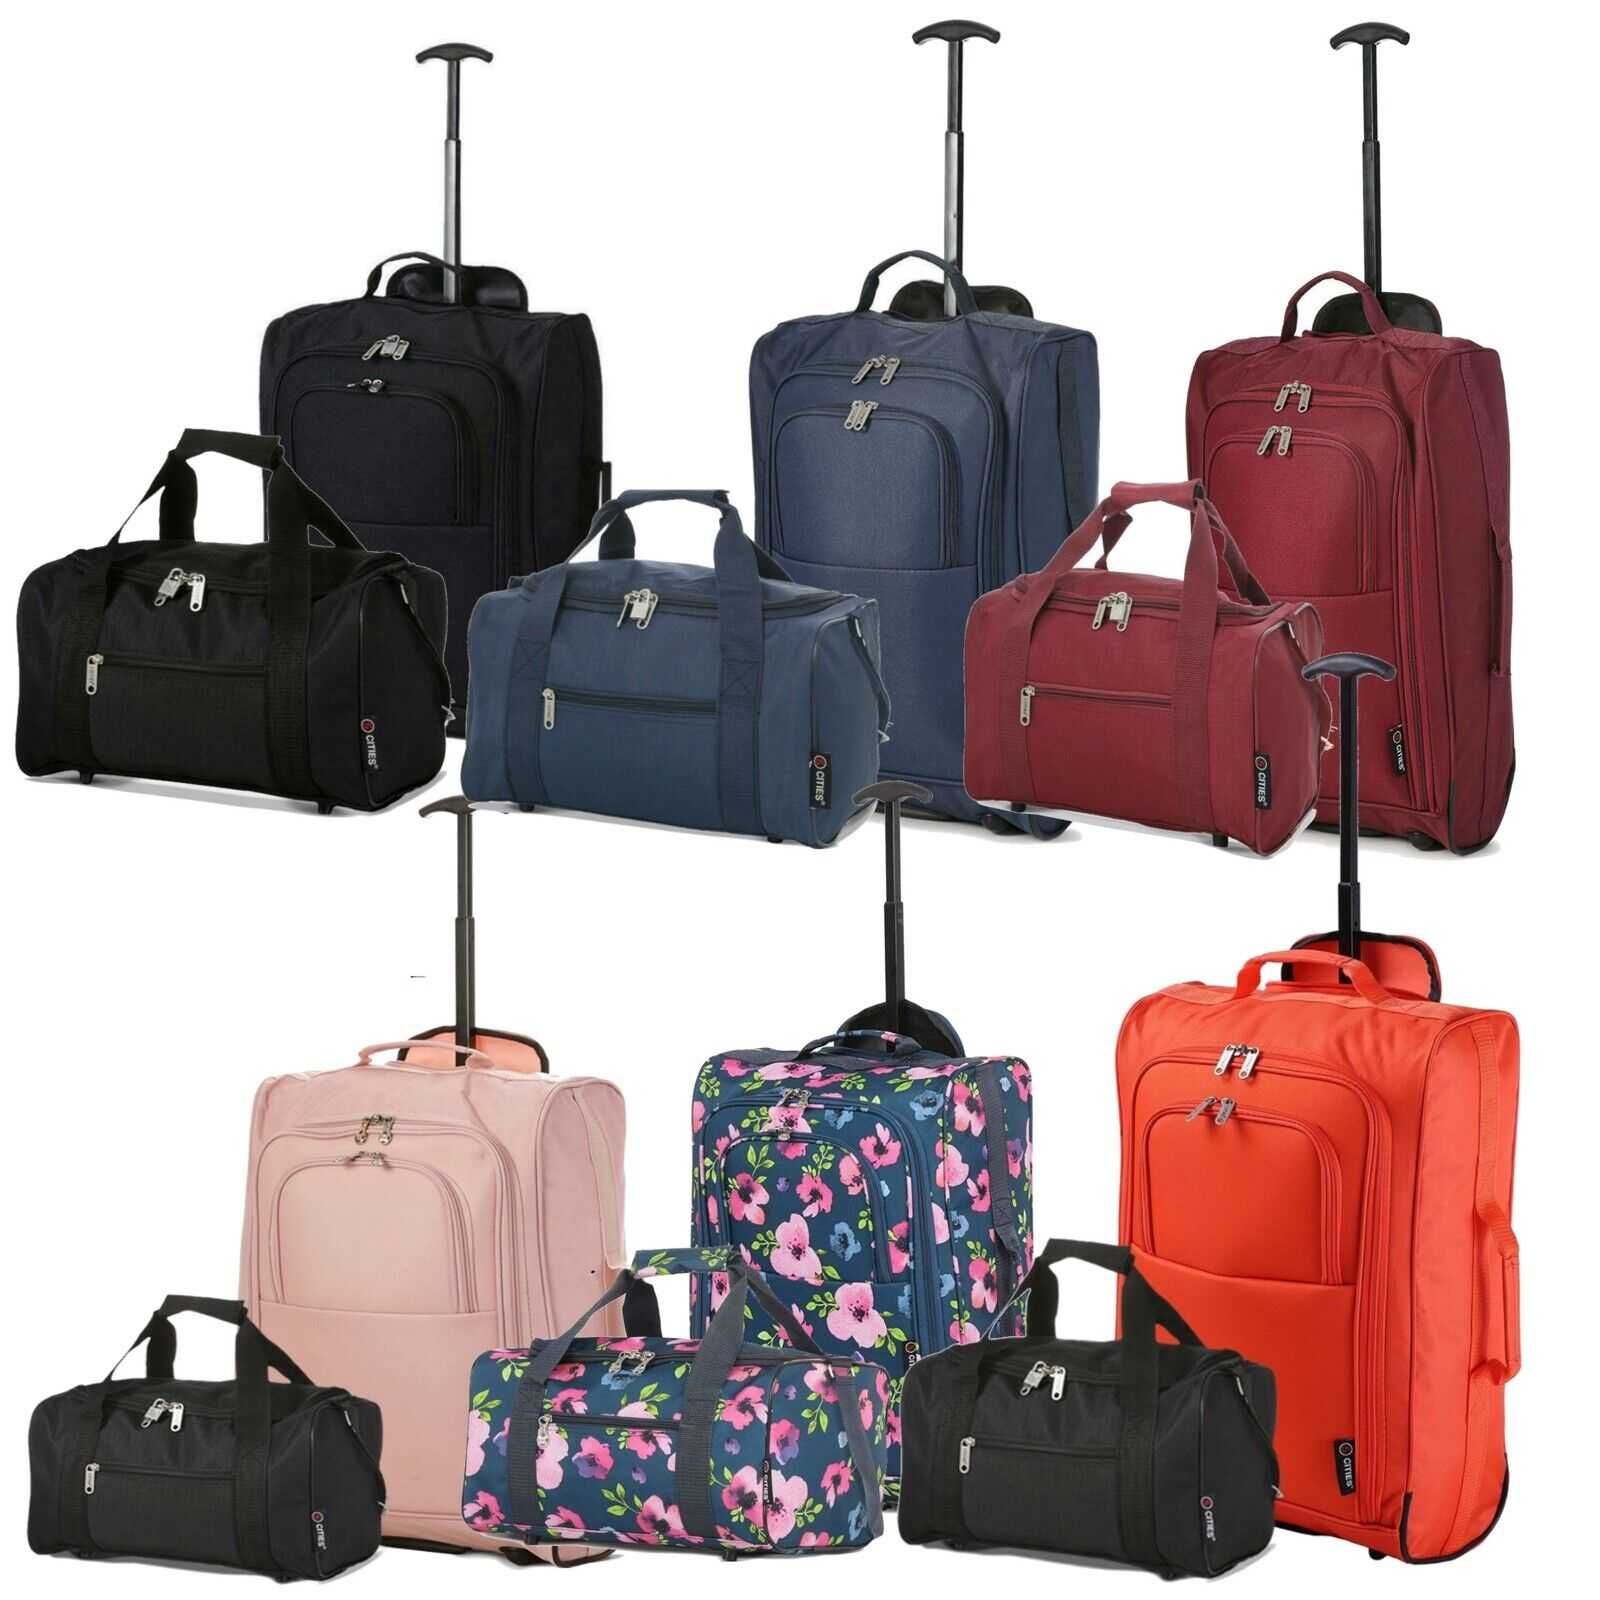 9e8321835e5 Details about Ryanair Approved Hand Luggage Set 40x25x20 Holdall & 55x35x20  Cabin Bag Trolley